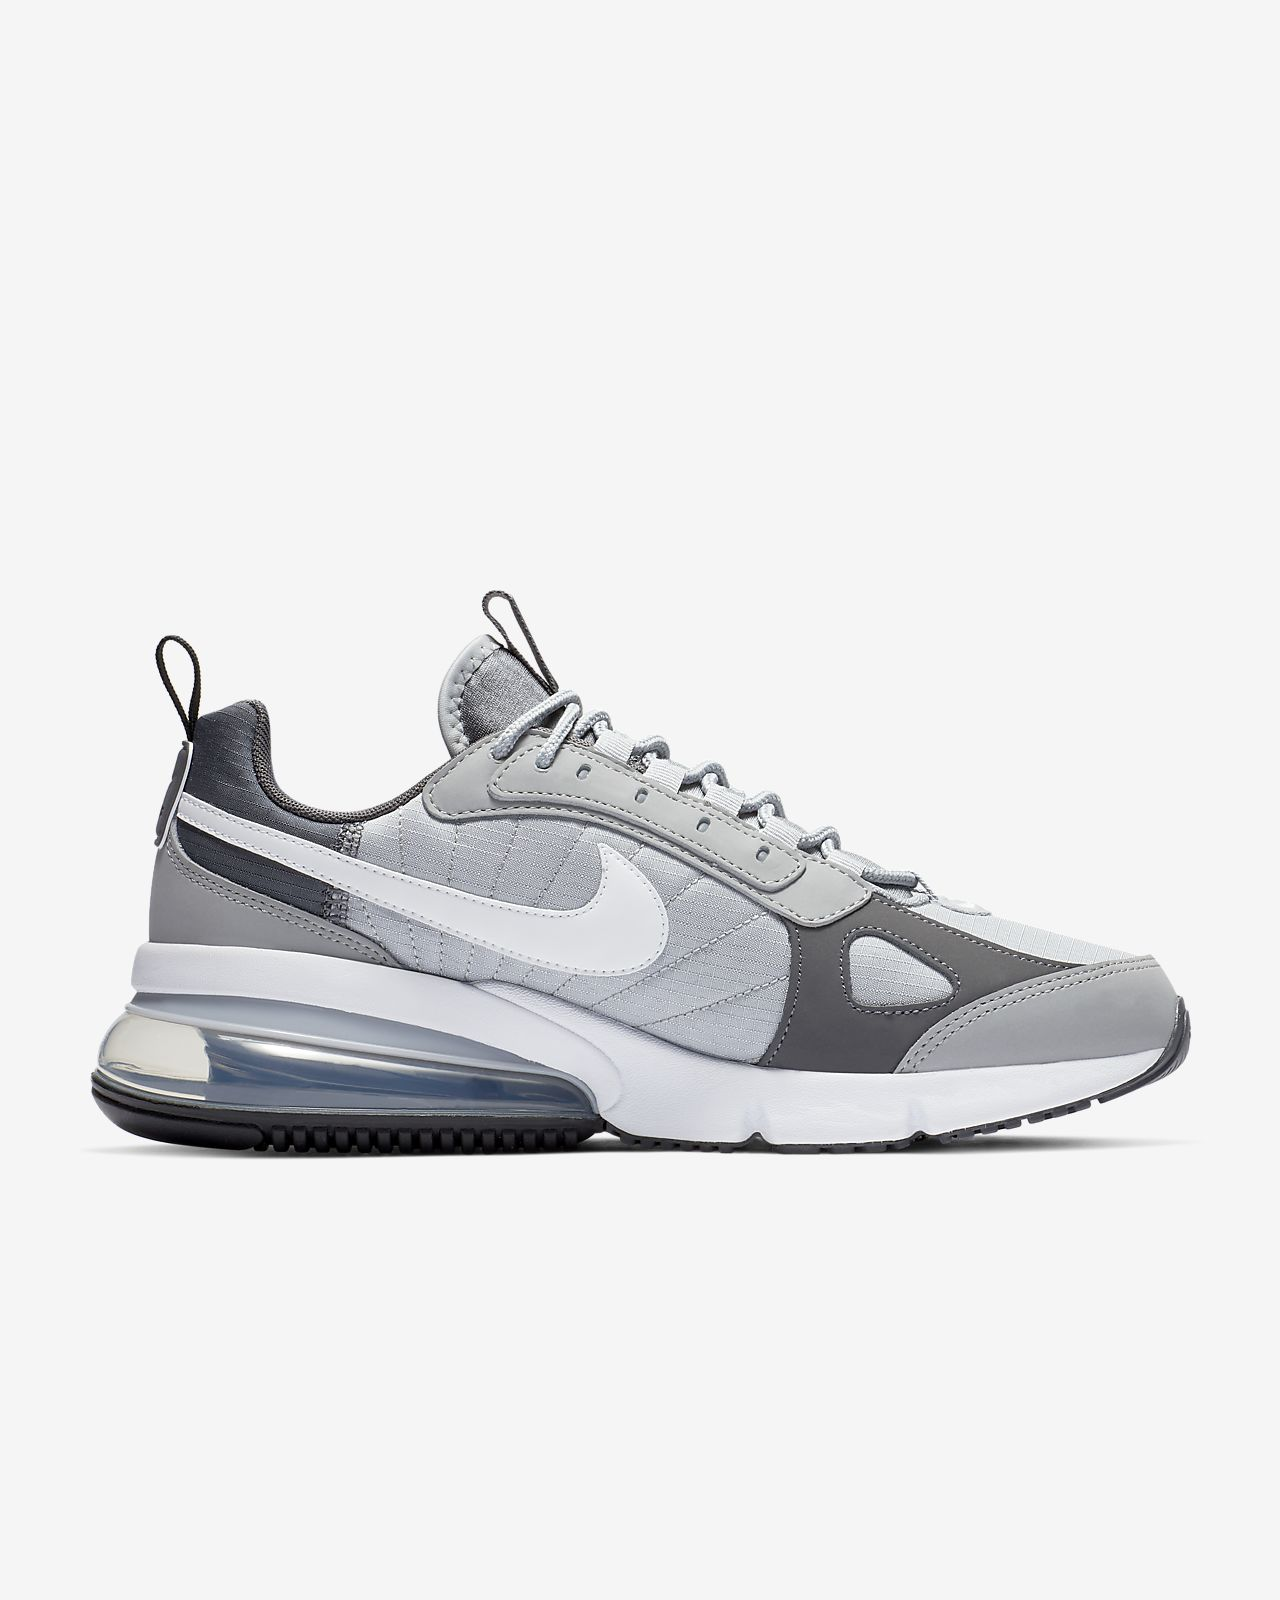 new arrival 233dc f5cd3 Low Resolution Nike Air Max 270 Futura Men s Shoe Nike Air Max 270 Futura  Men s Shoe